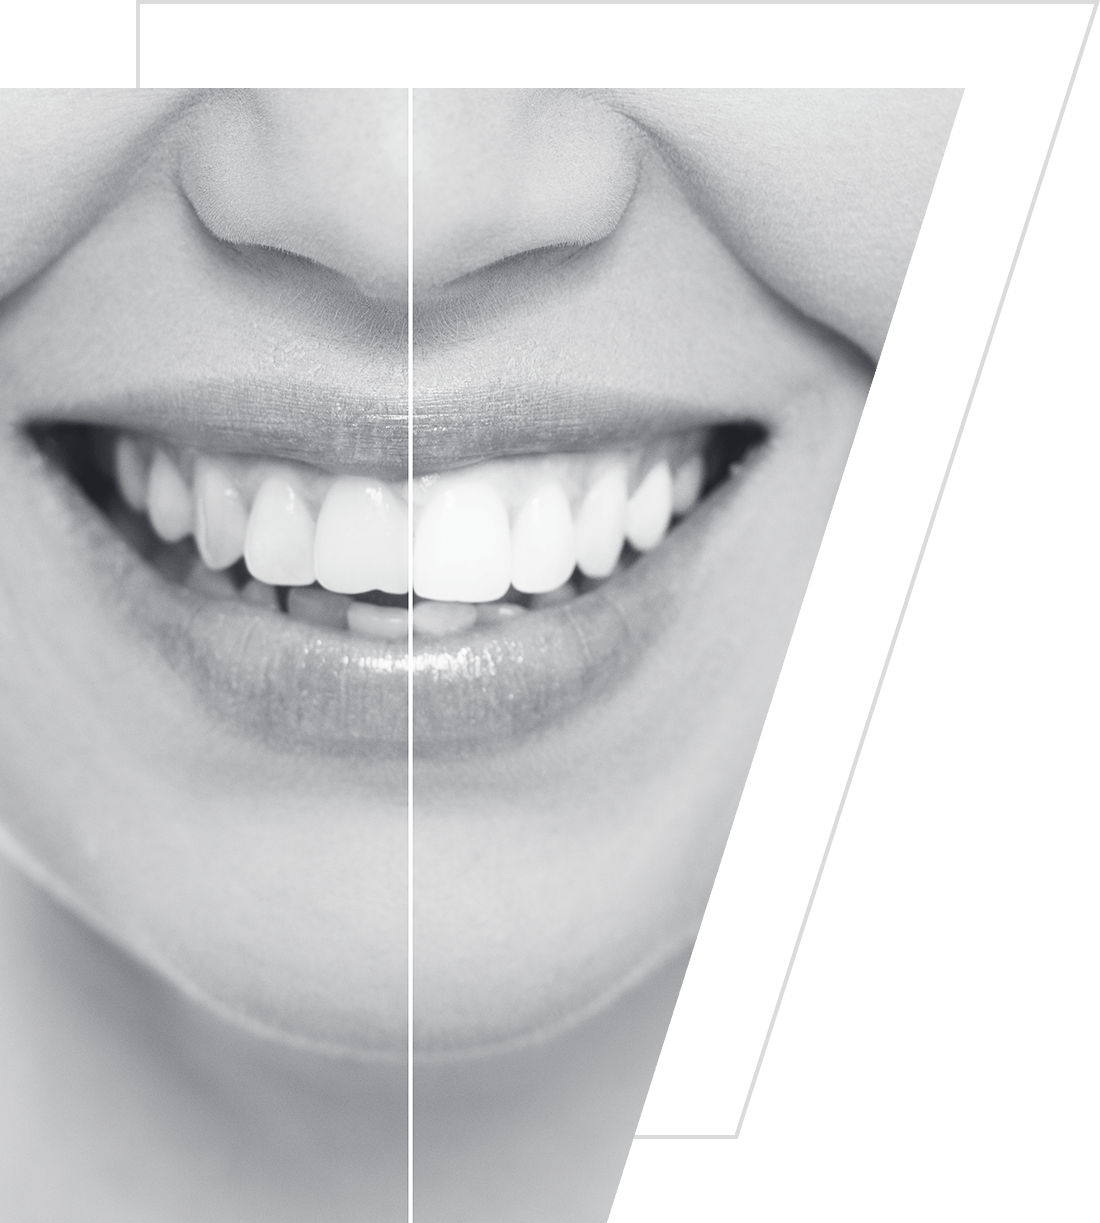 Photo comparing teeth before and after whitening